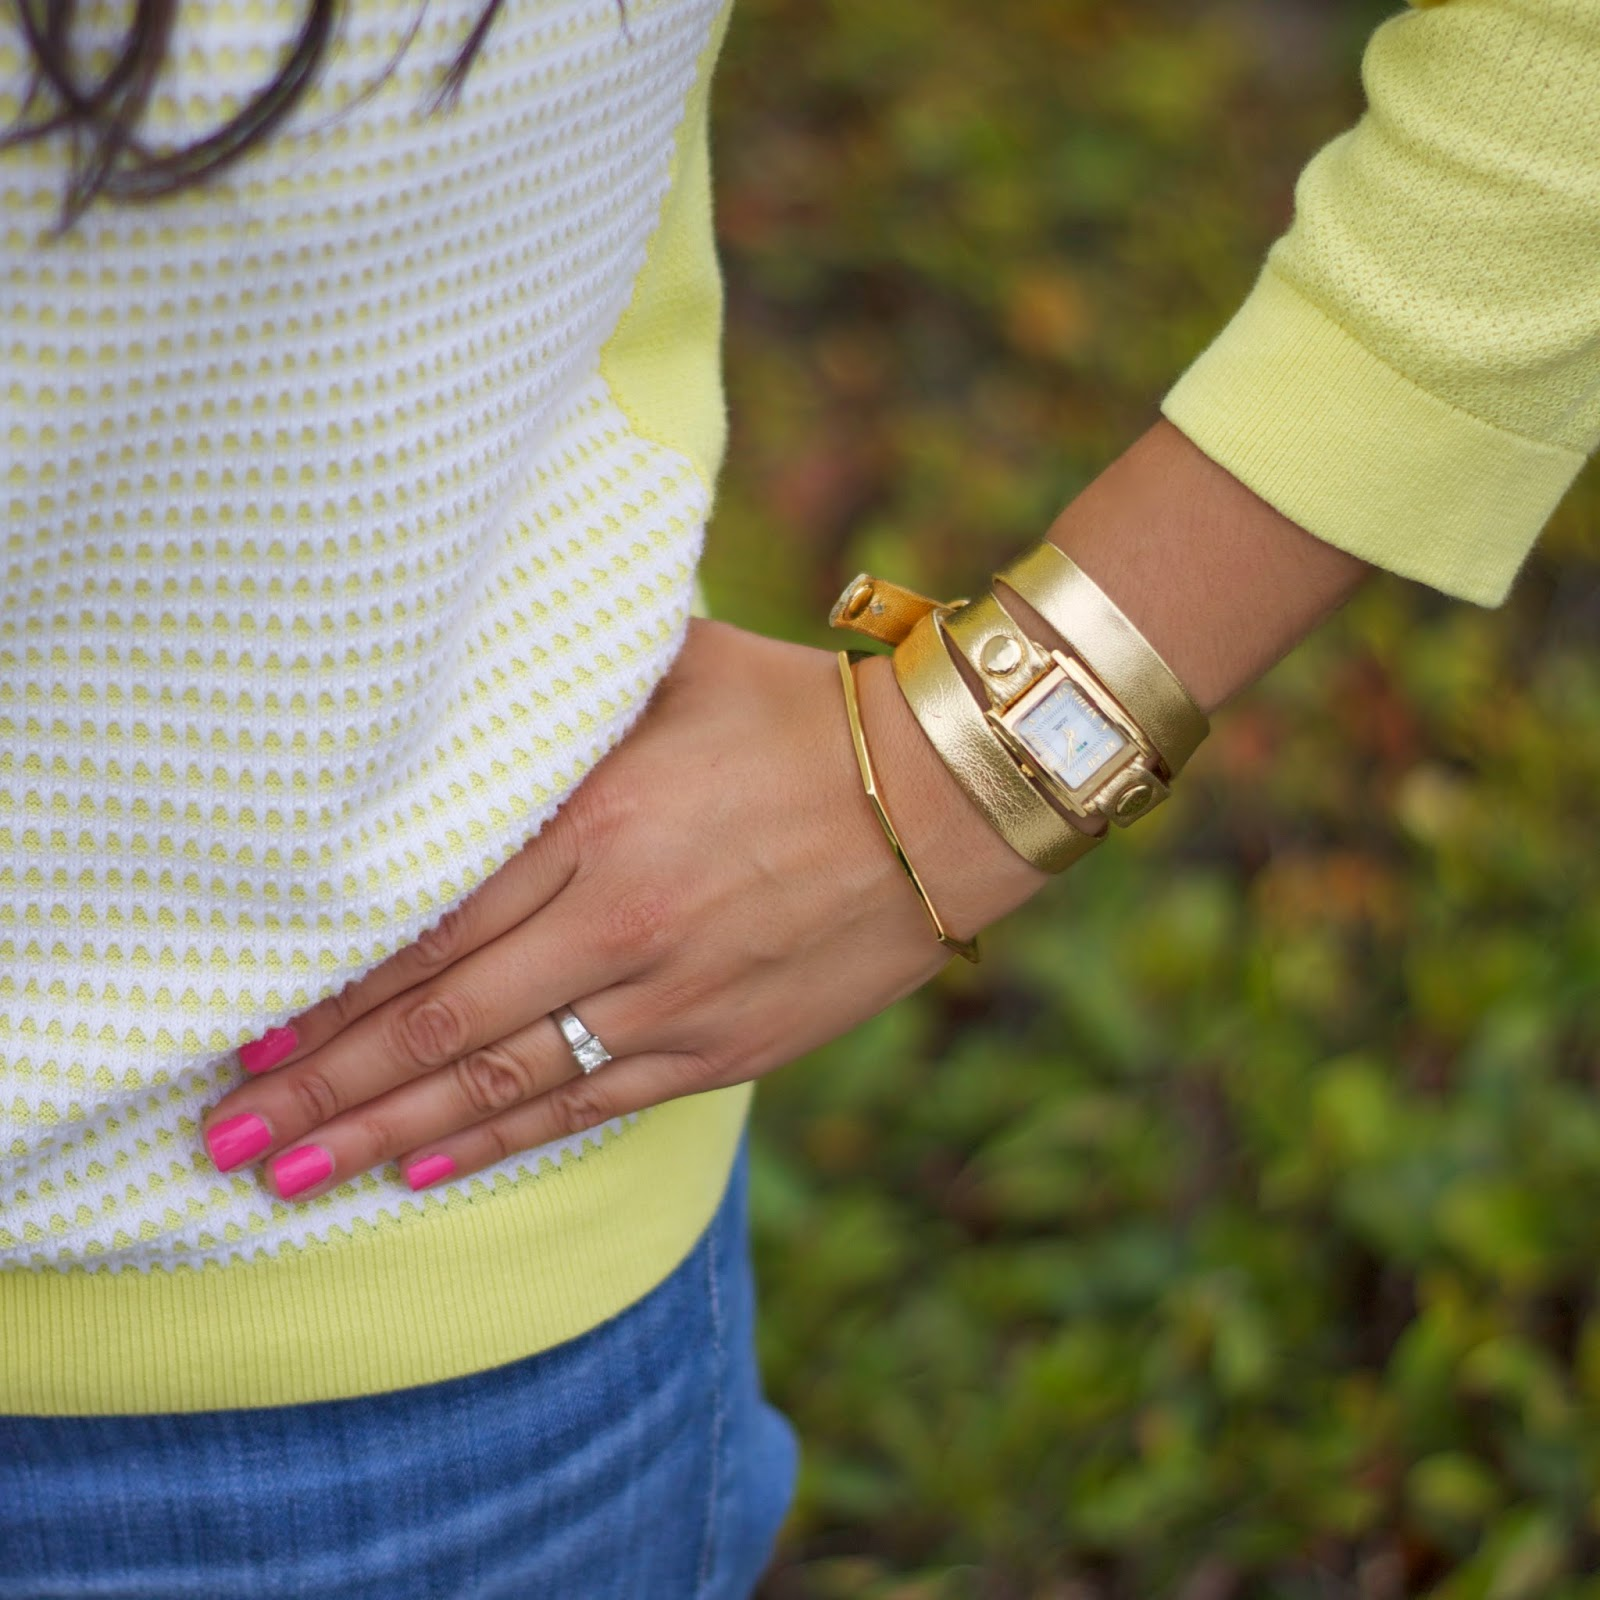 la mer gold wrap watch, gorjana bracelet happily grey collab, gorjana blogger